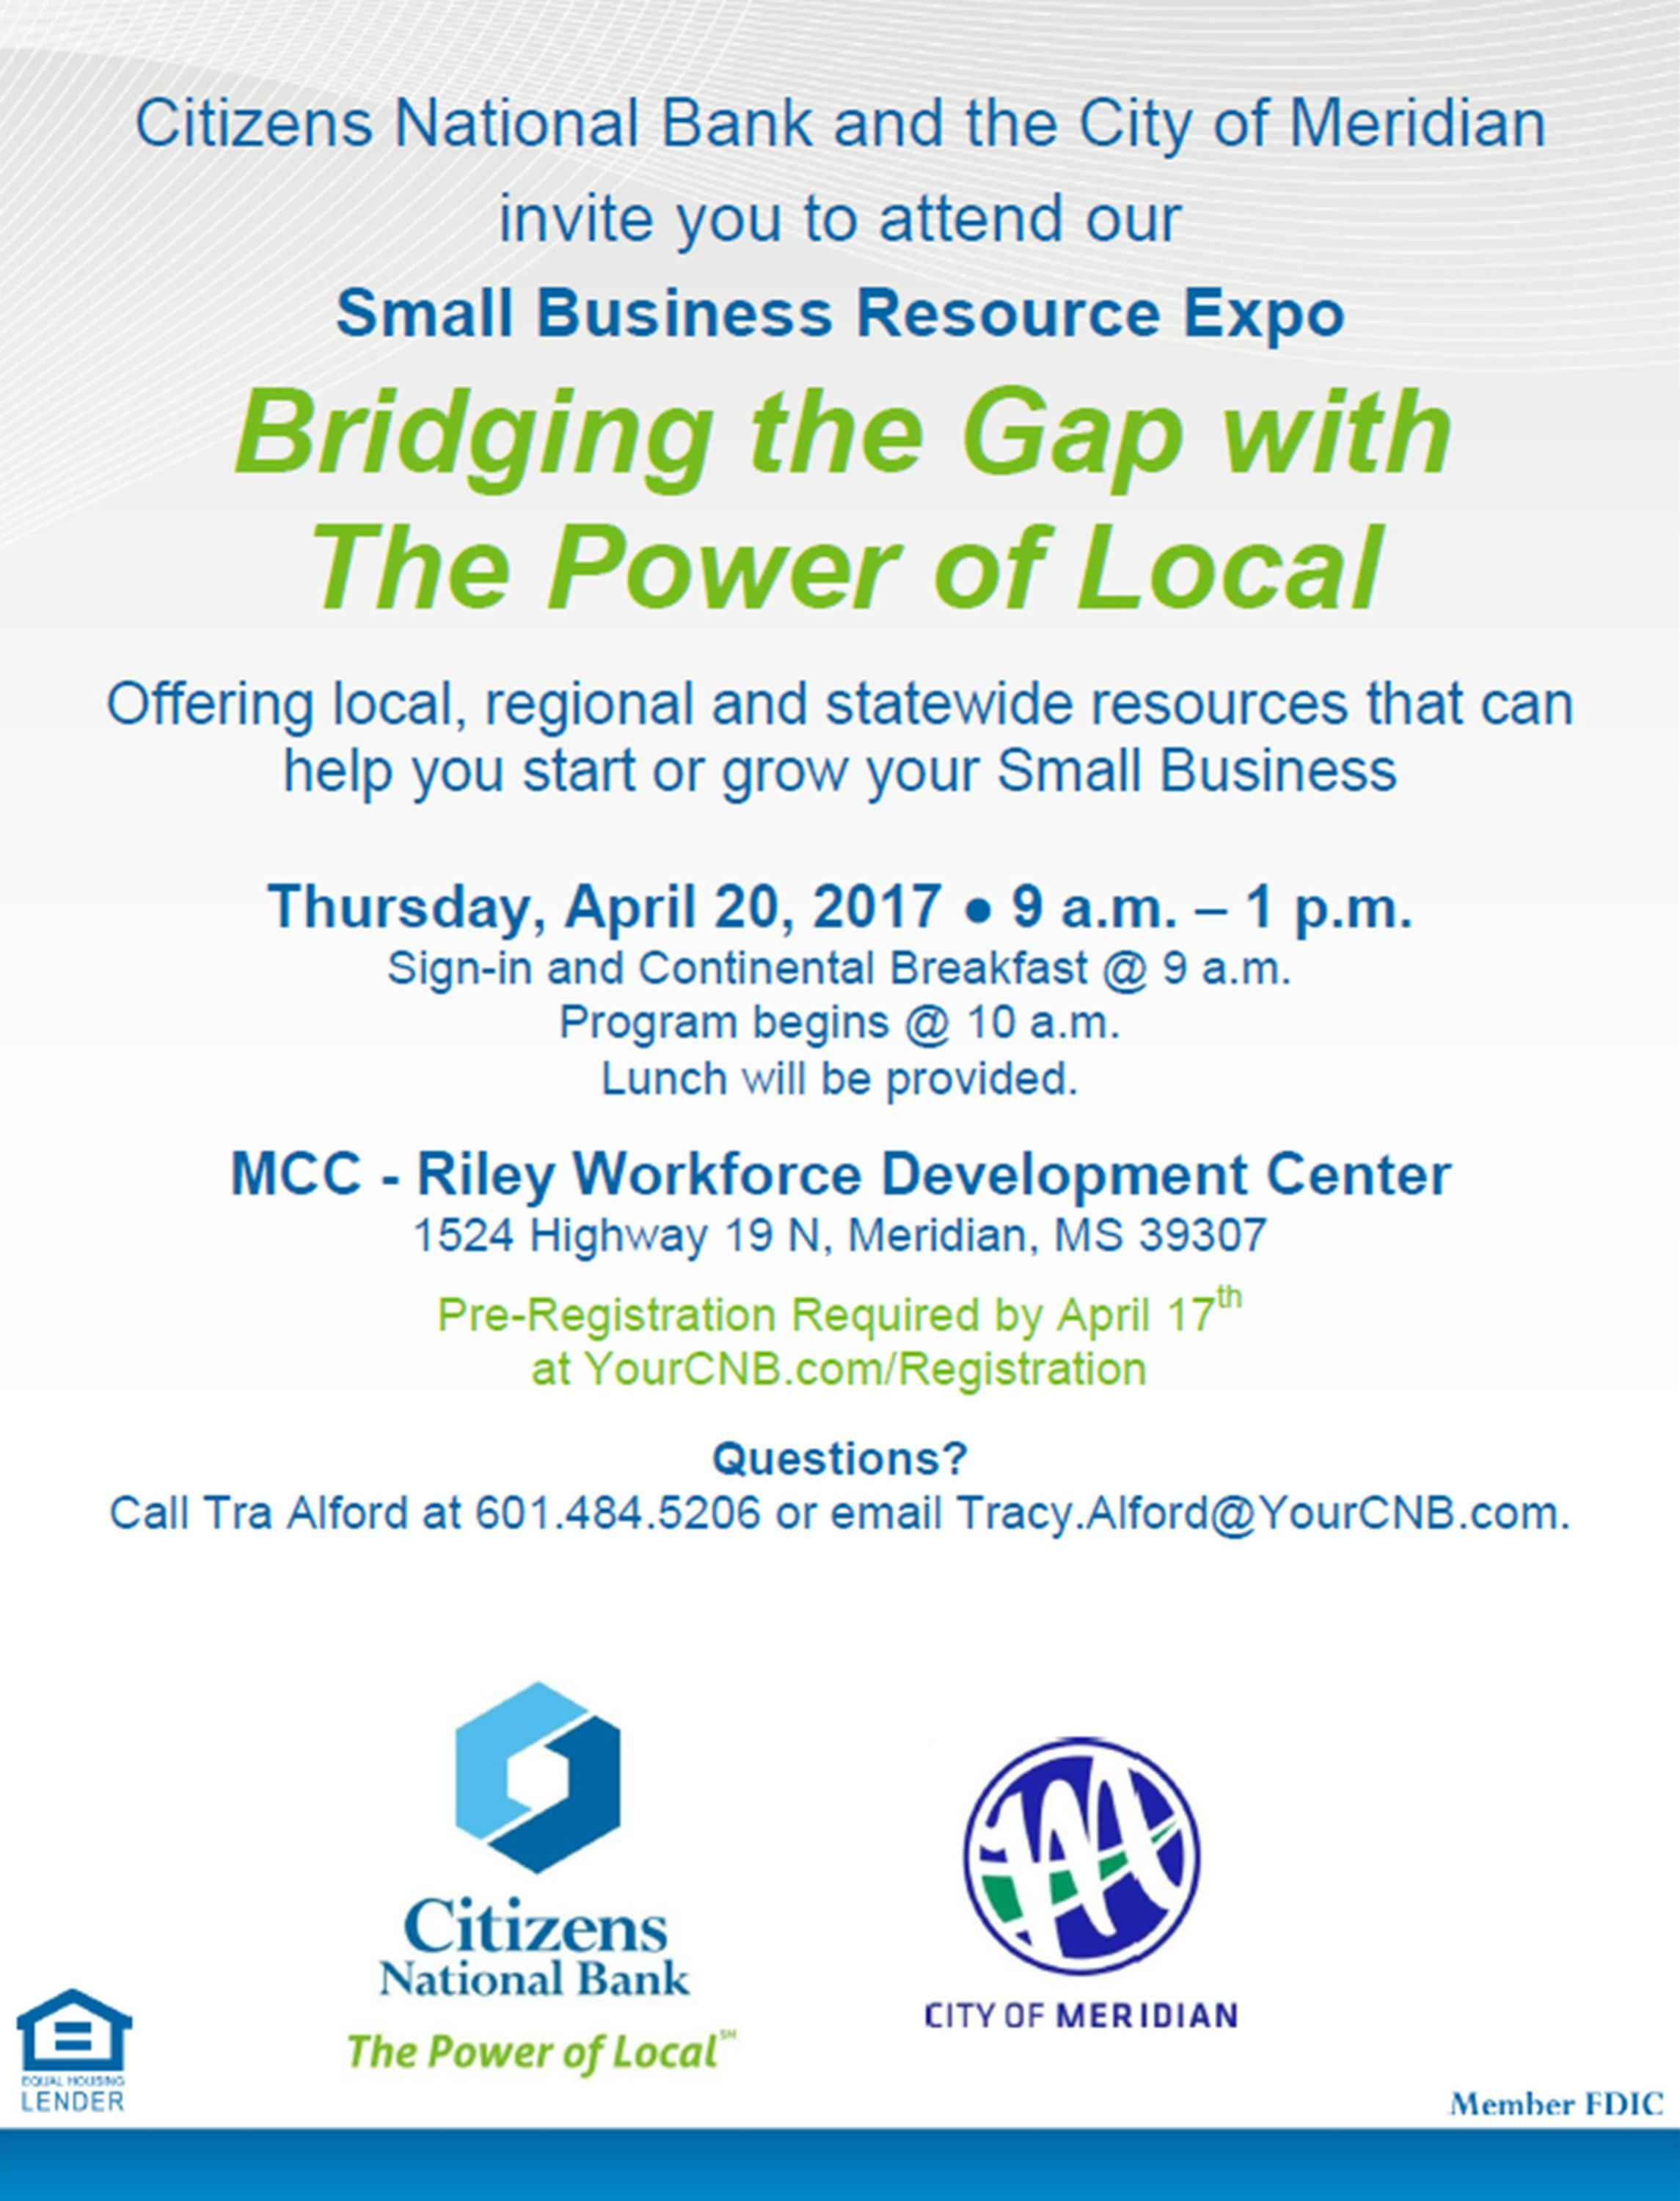 Small Business Resource Expo - Citizens National Bank